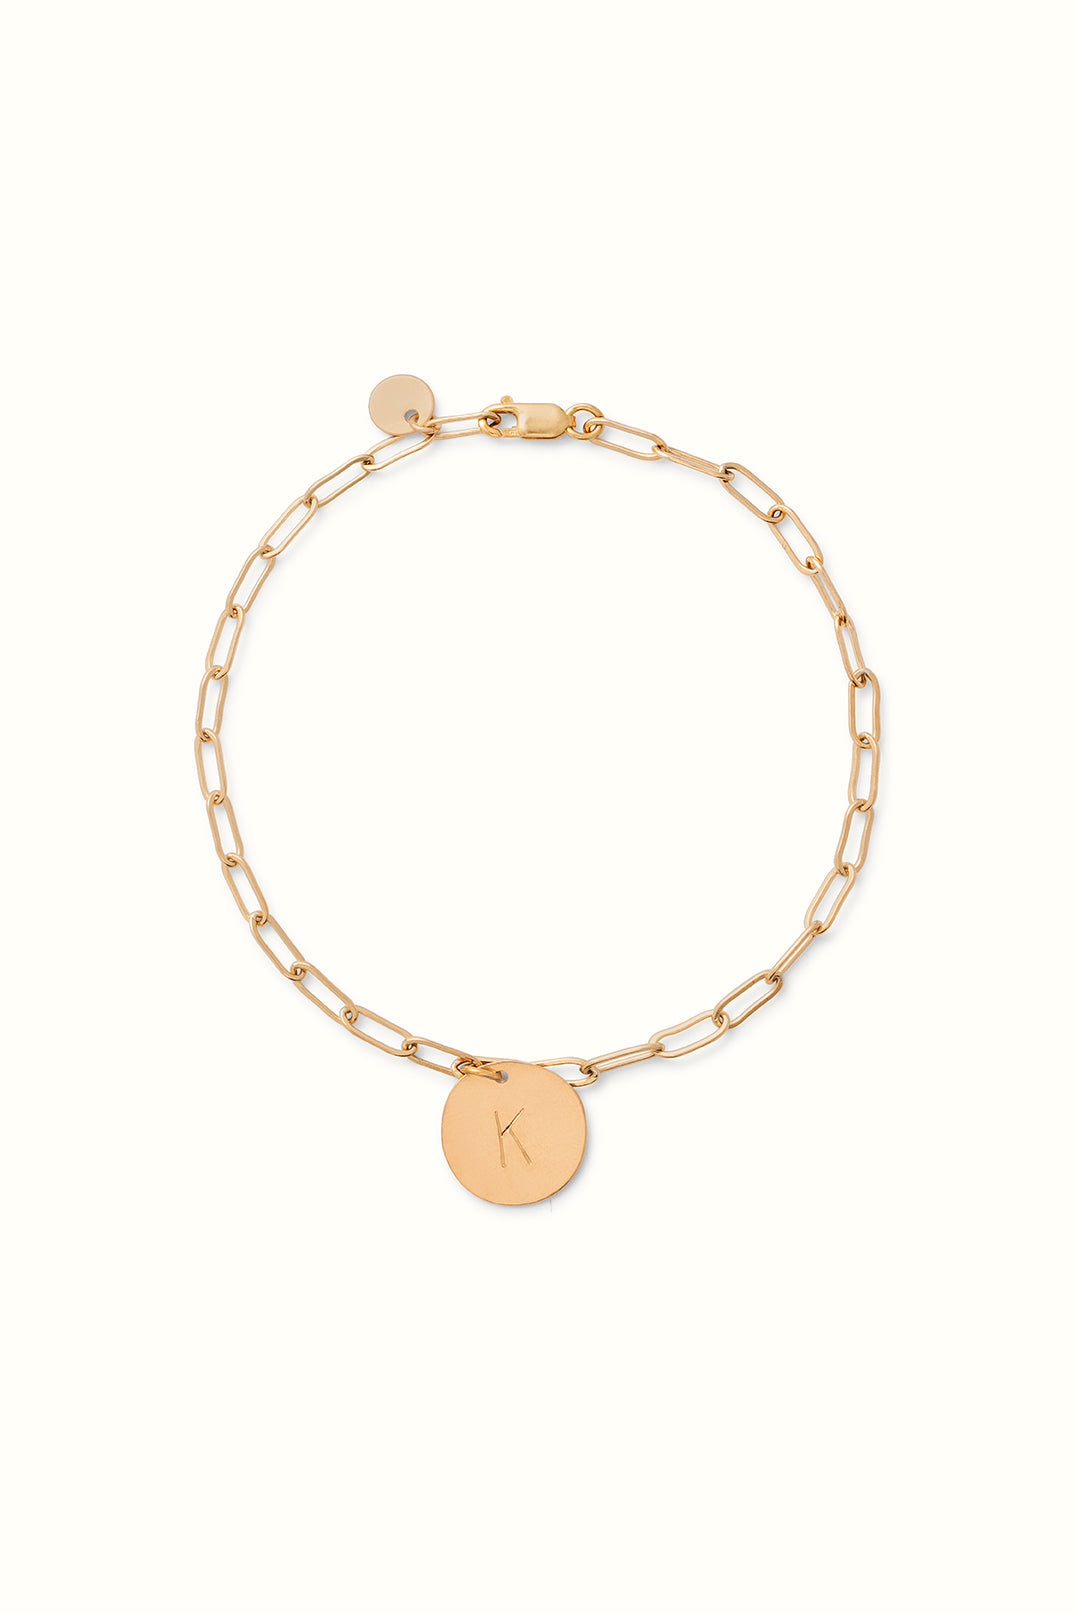 a gold filled paperclip chain bracelet with a round initial pendant lying on a white surface